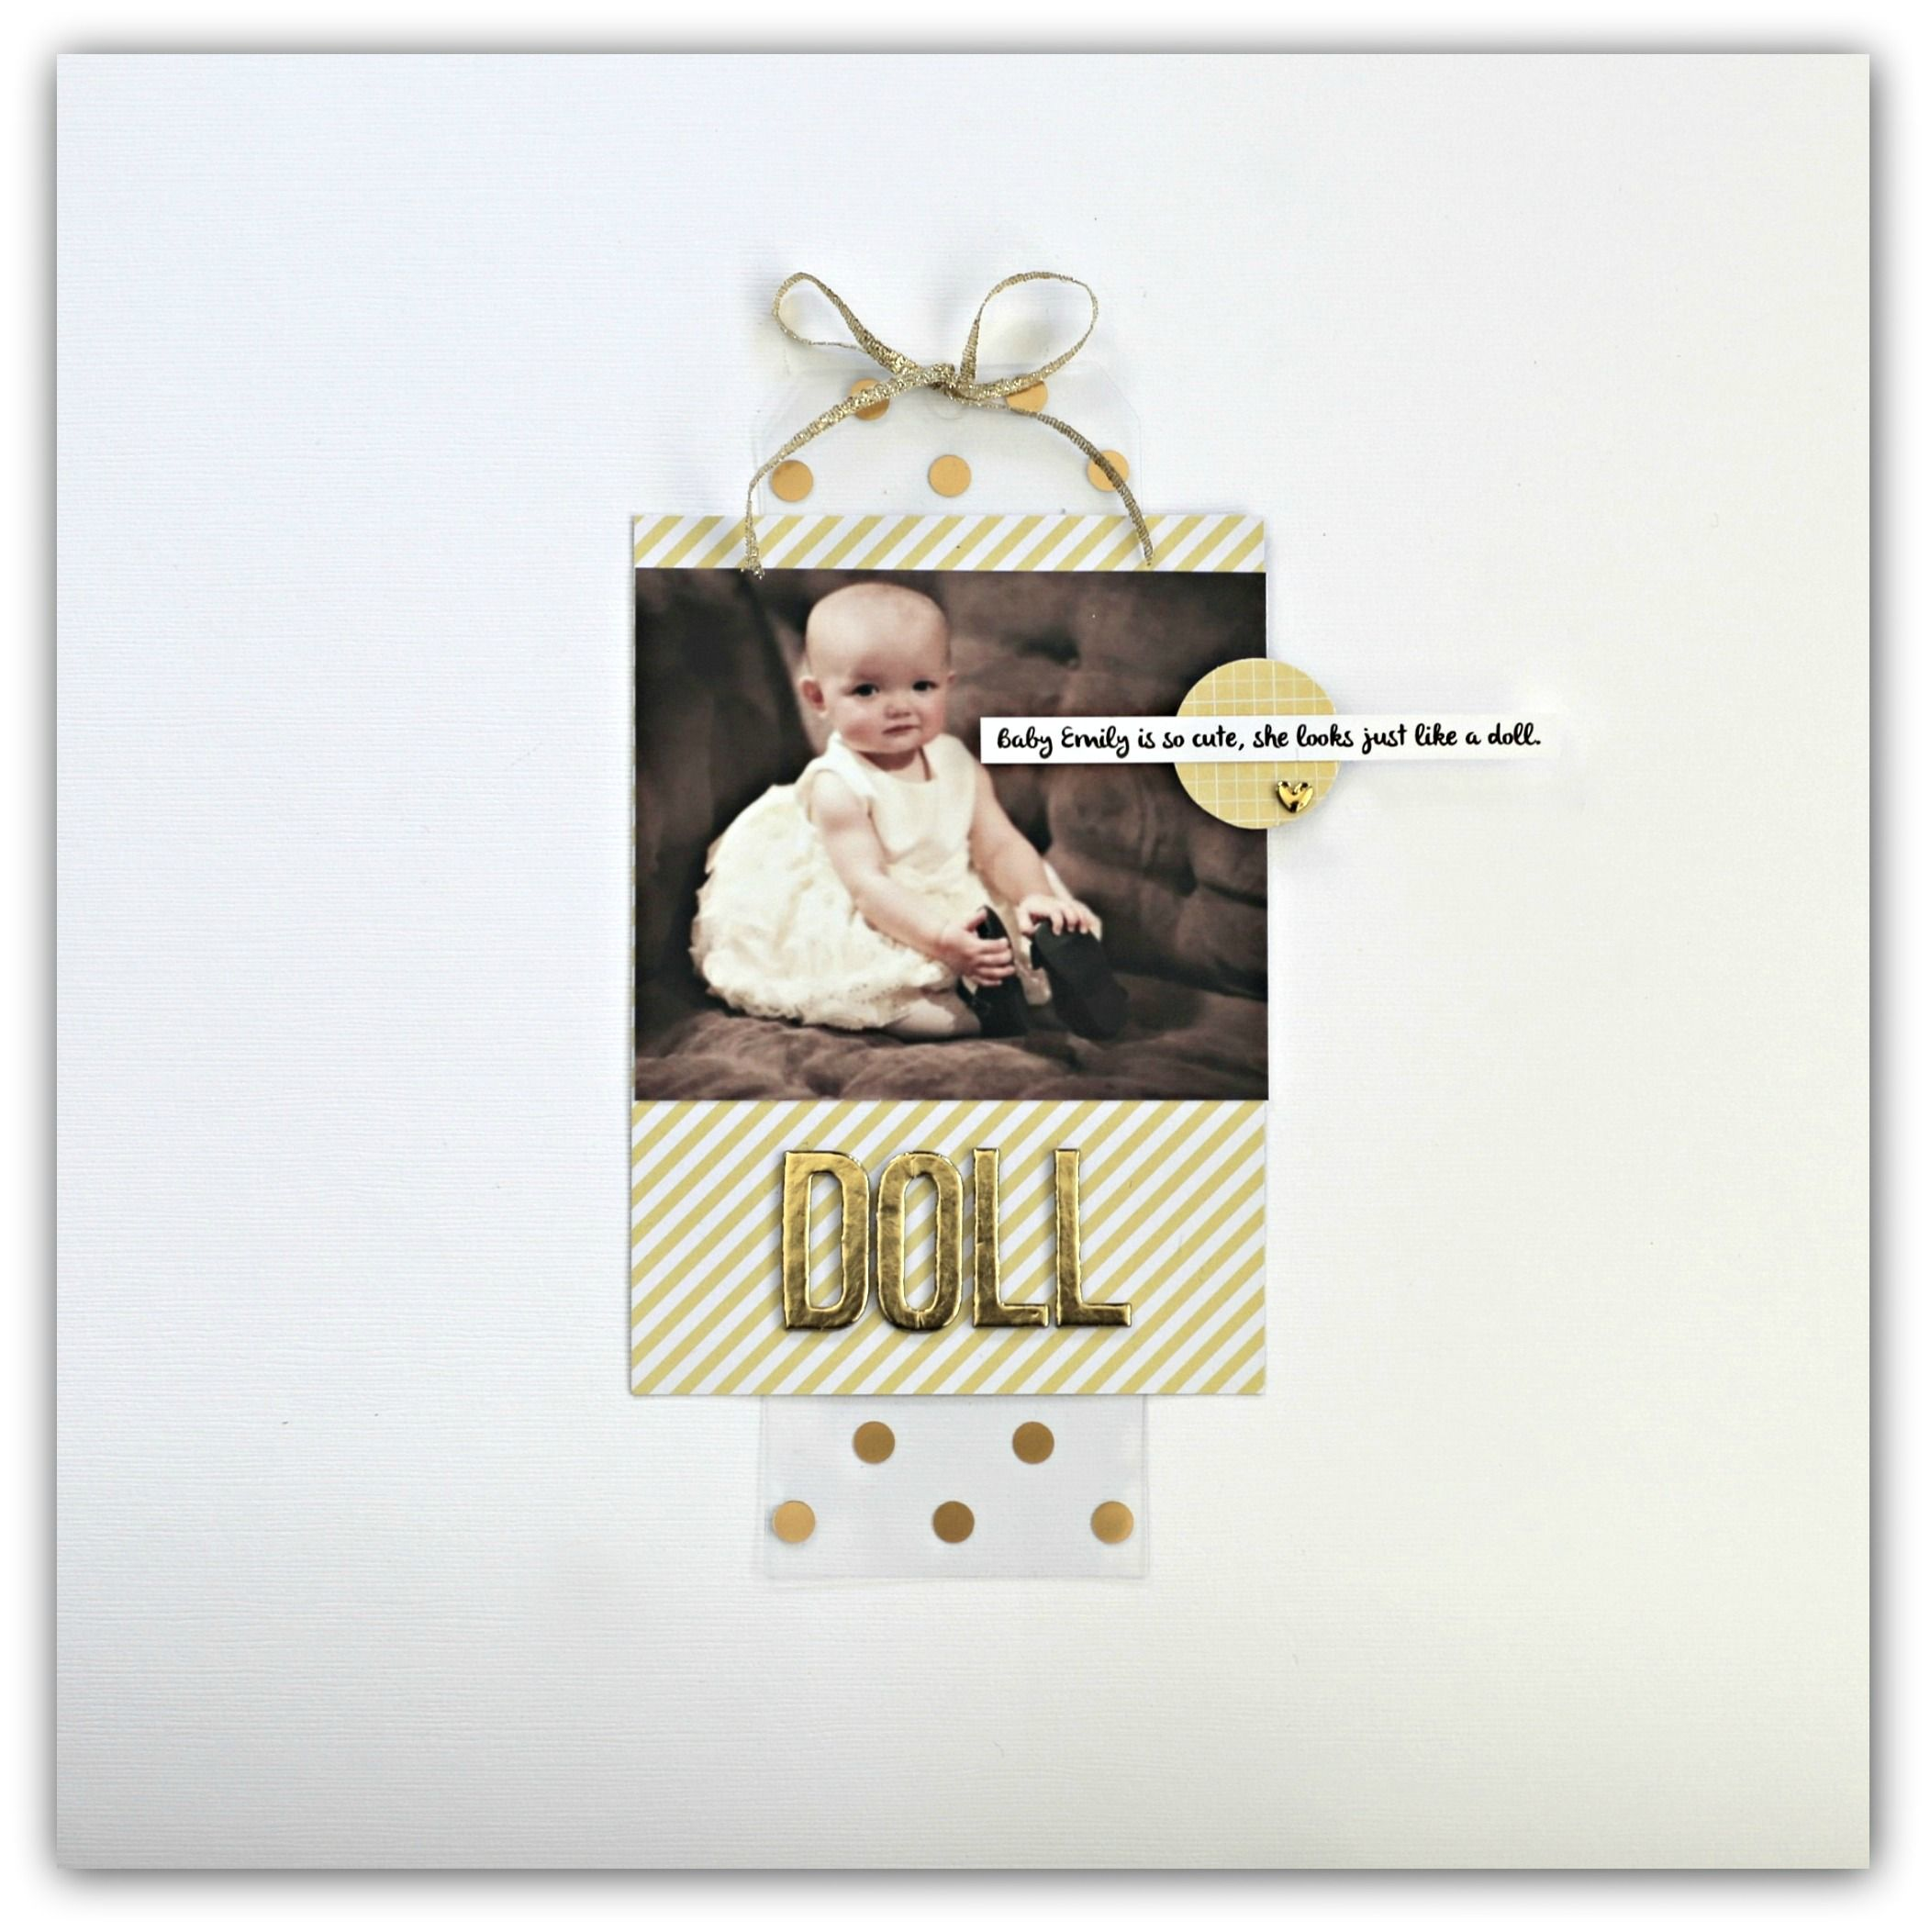 Doll by Jody Wenke Scrapbook layout